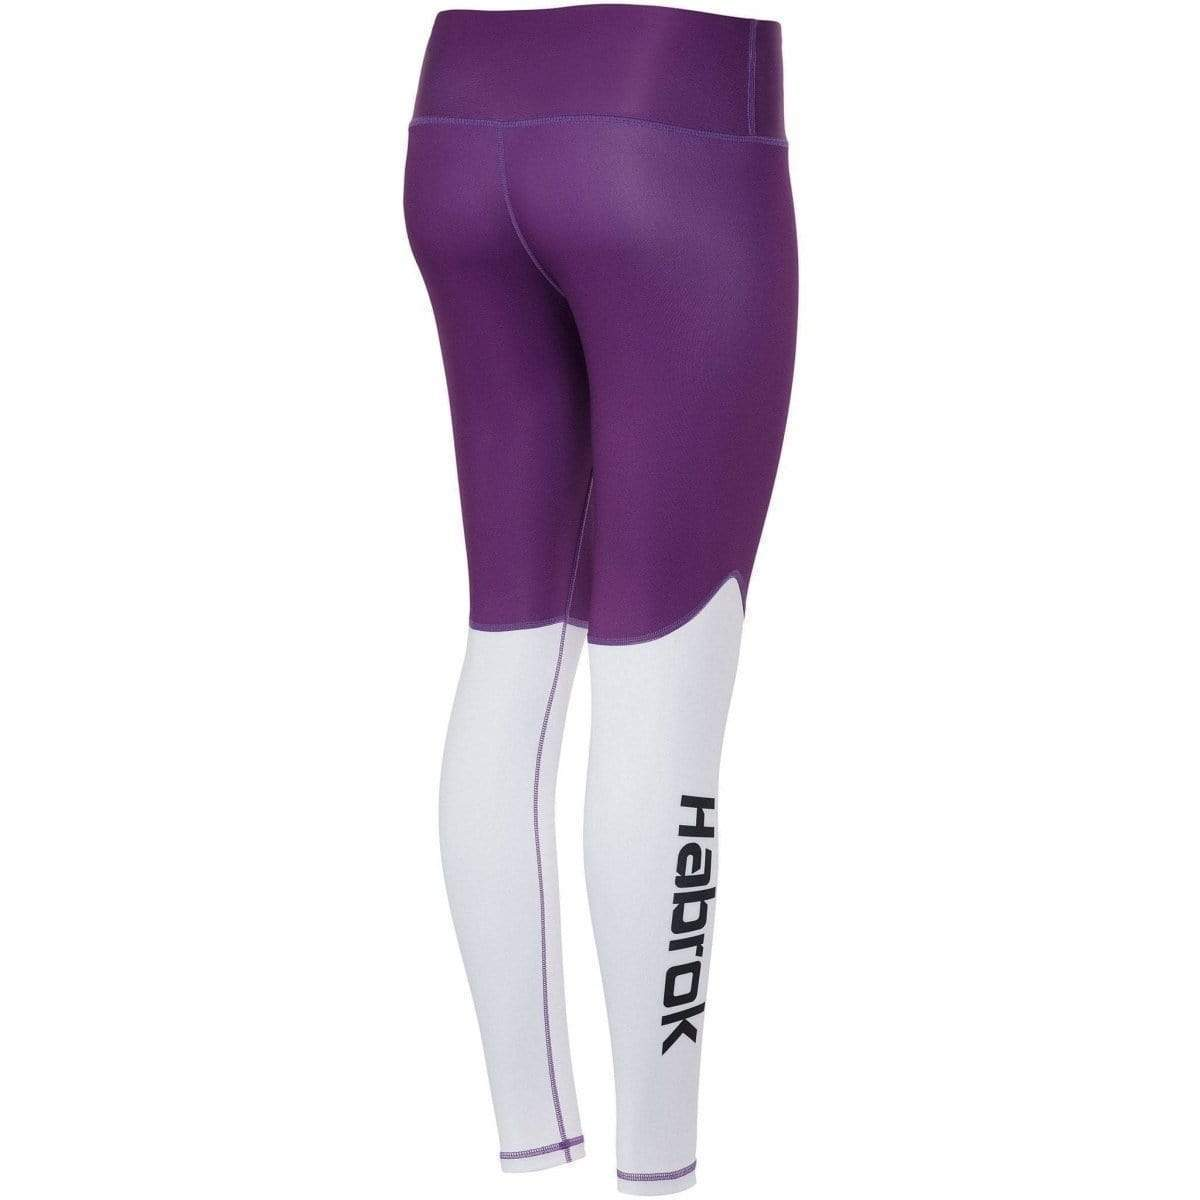 Habrok Spats Transform 2.5 | Compression Pants | Women